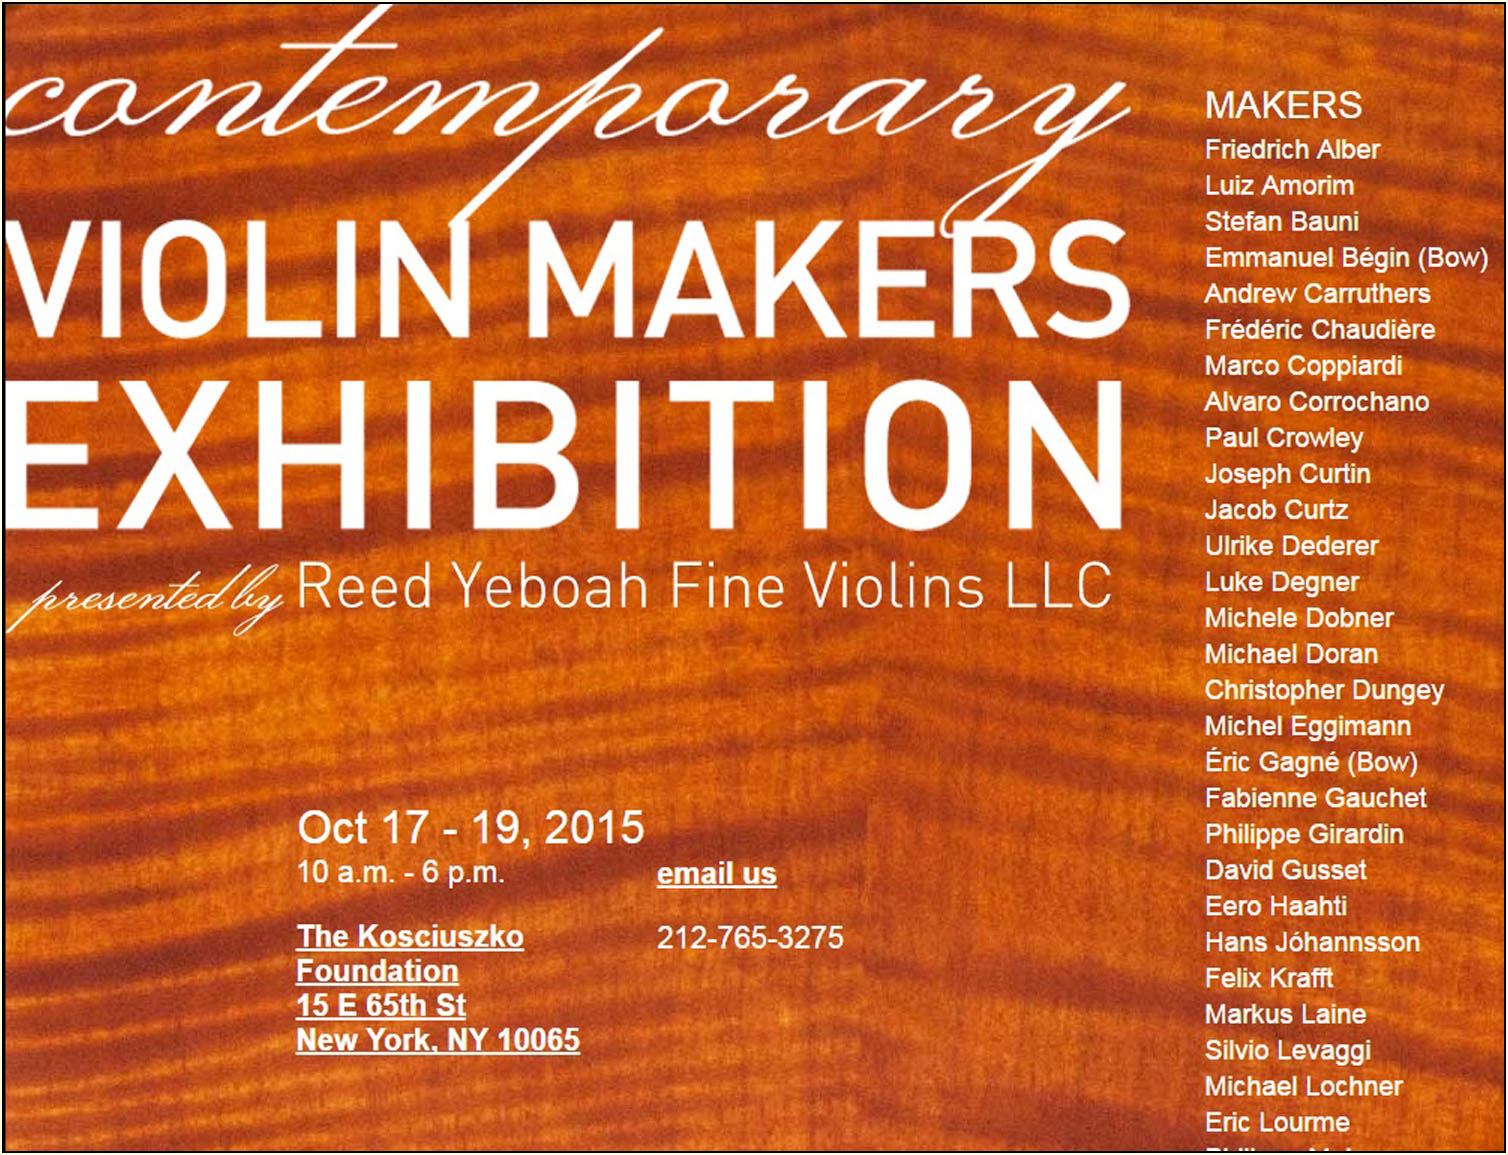 CONTEMPORARY VIOLIN MAKERS EXHIBITION PRESENTED BY REED YEBOAH FINE VIOLINS LLC